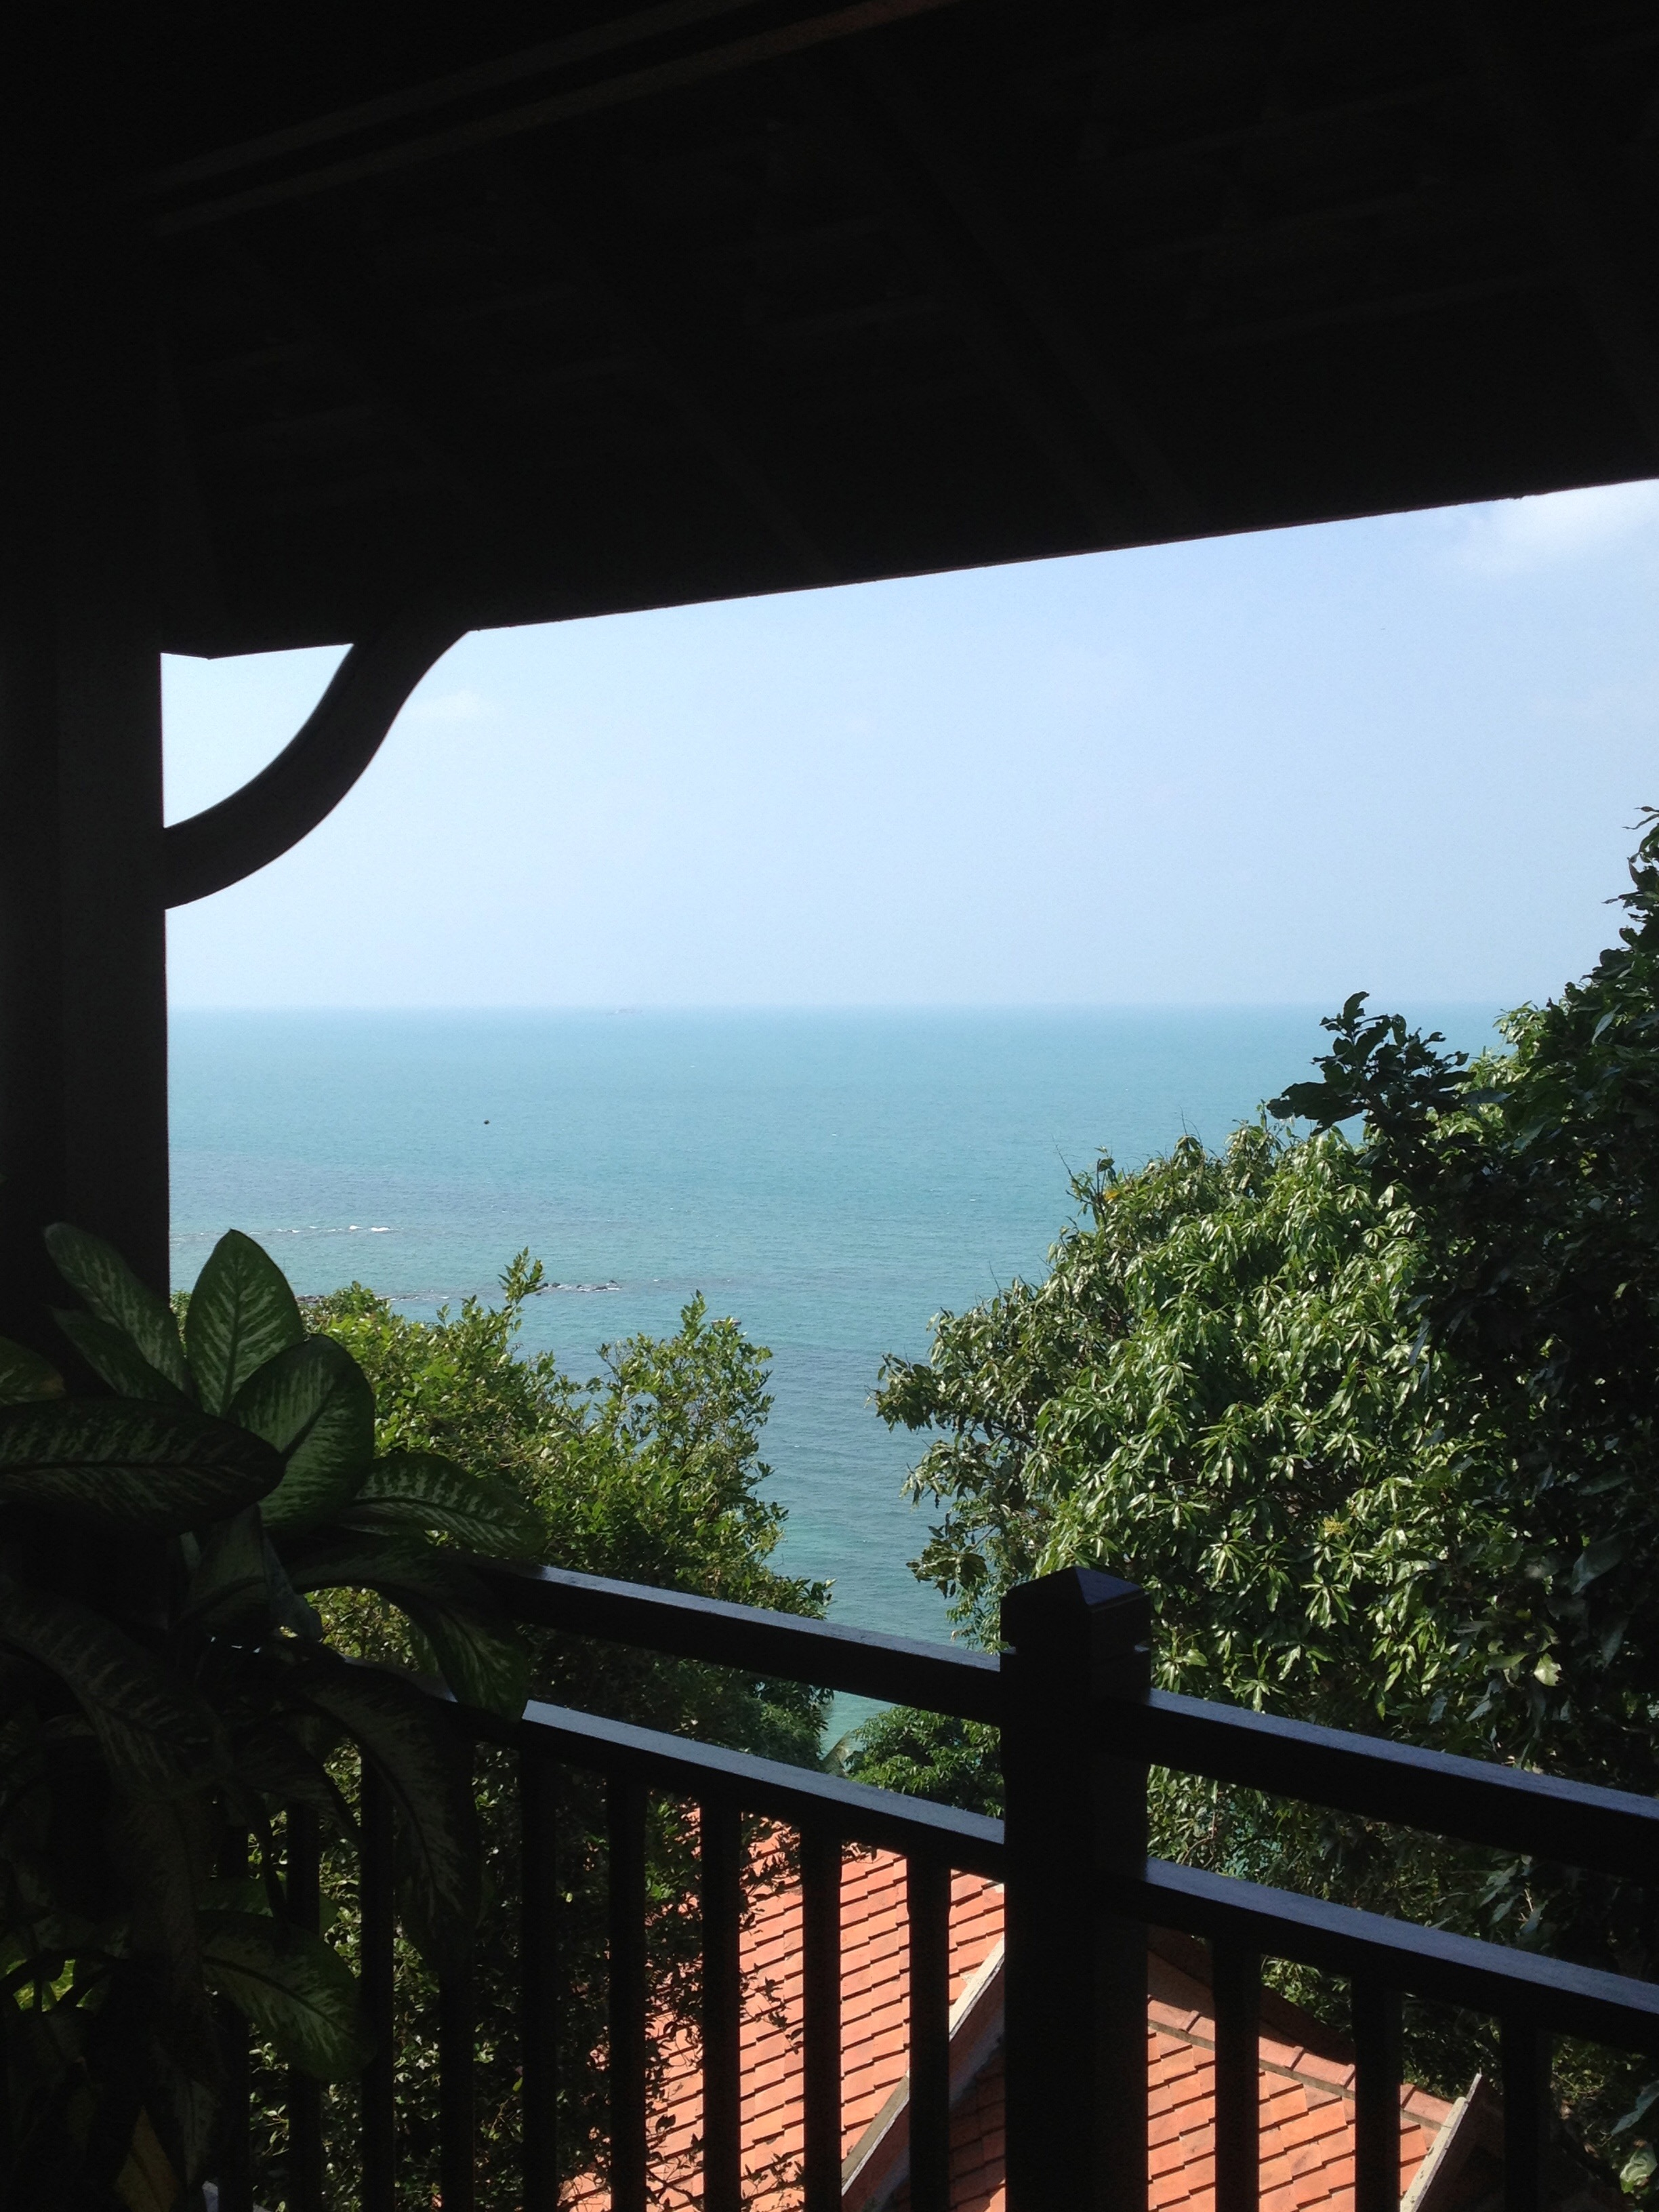 TRAVEL: Thailand, Part 3 - Koh Samui